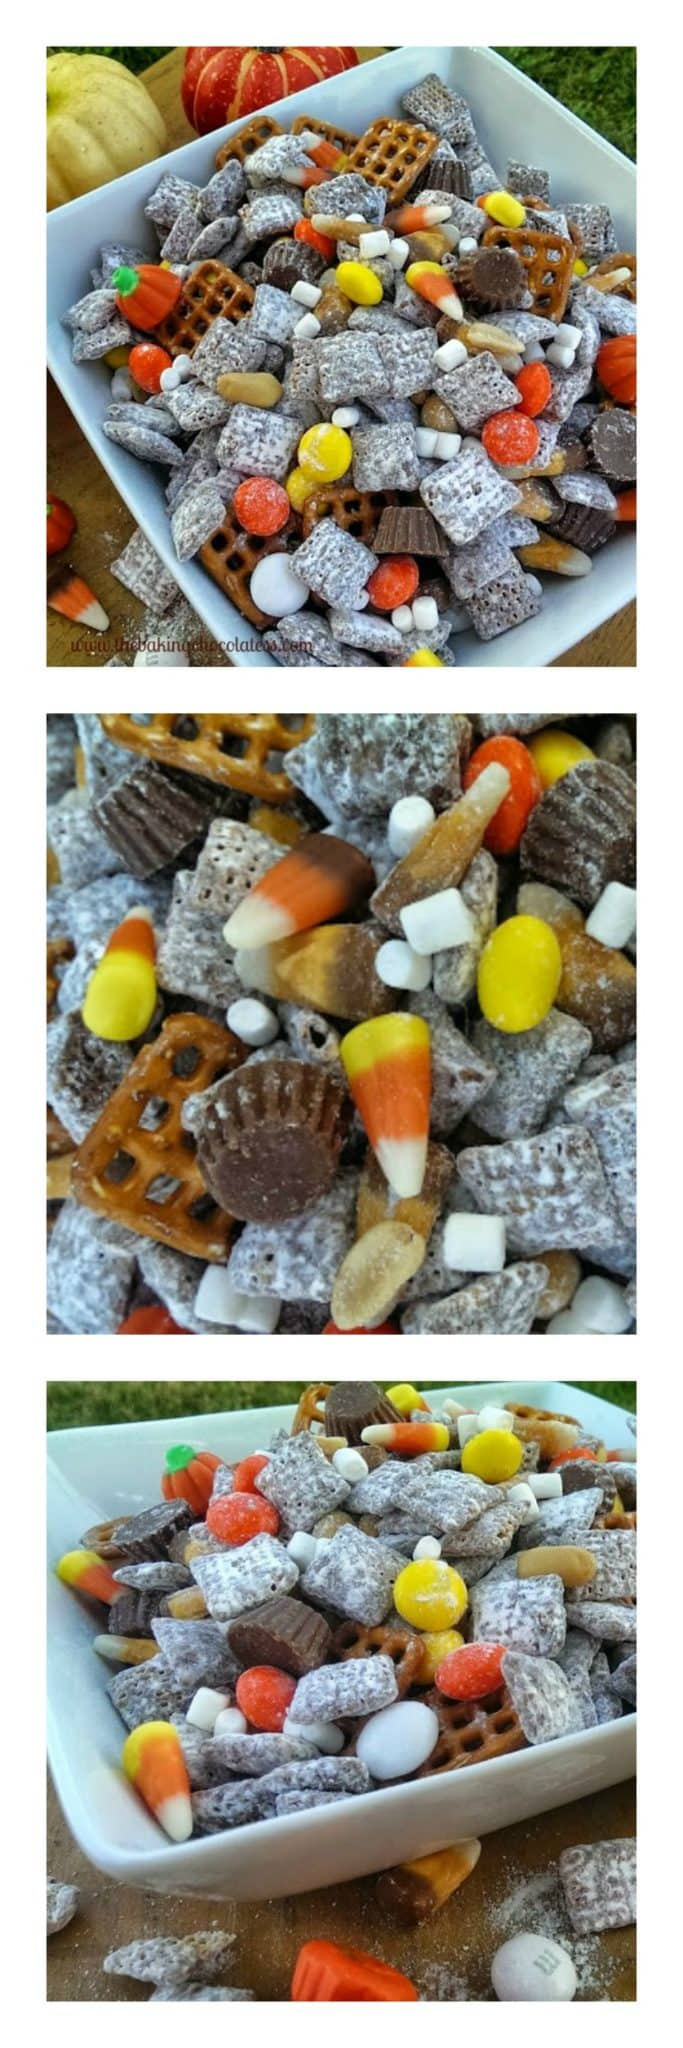 Halloween 'Party' Puppy Chow - Celebrate Halloween in 'party' mode with this yummy, addictive munchie, crunchy corn chex mix drenched with chocolate and peanut butter flavors, partied up with a Halloween candy mix, pretzels and peanuts! Party on Frankenstein! Party on Dracula! Get your munchie fix here, little monsters!  #munchies #party #candy #chex #halloween  #sweet  #party mix #puppy chow